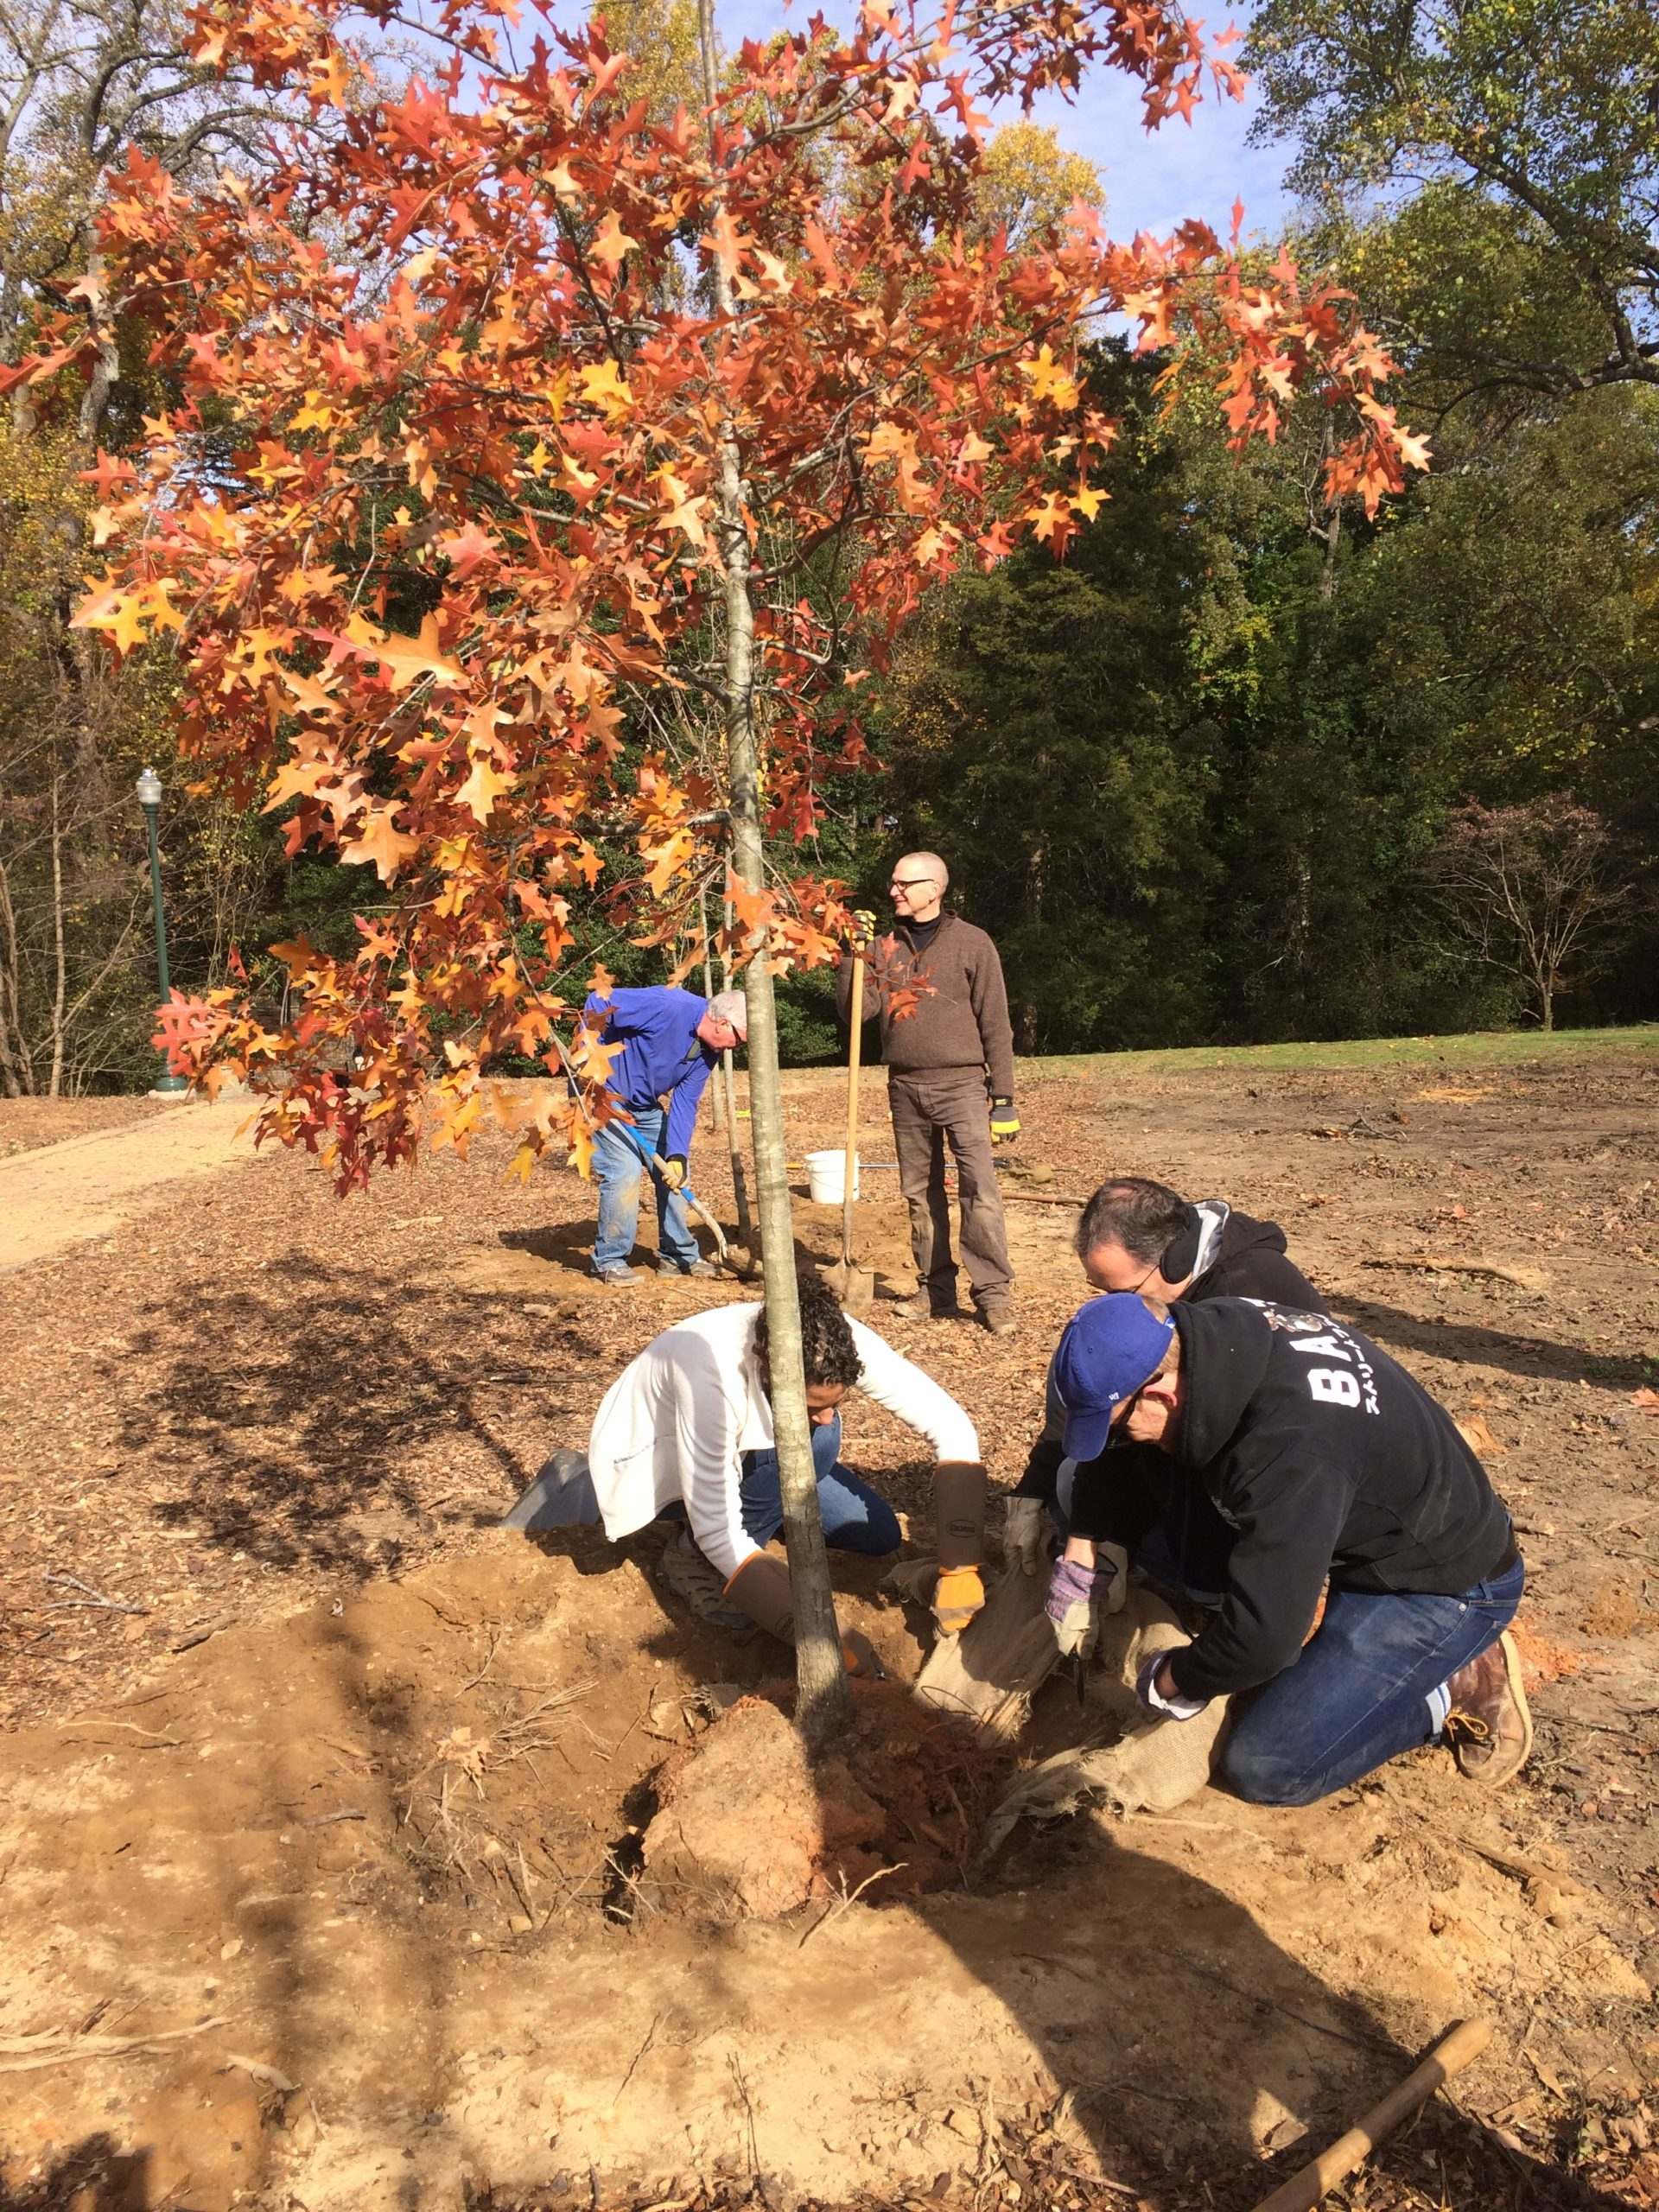 Time for a Change: Replace Bradford Pears with Native Trees